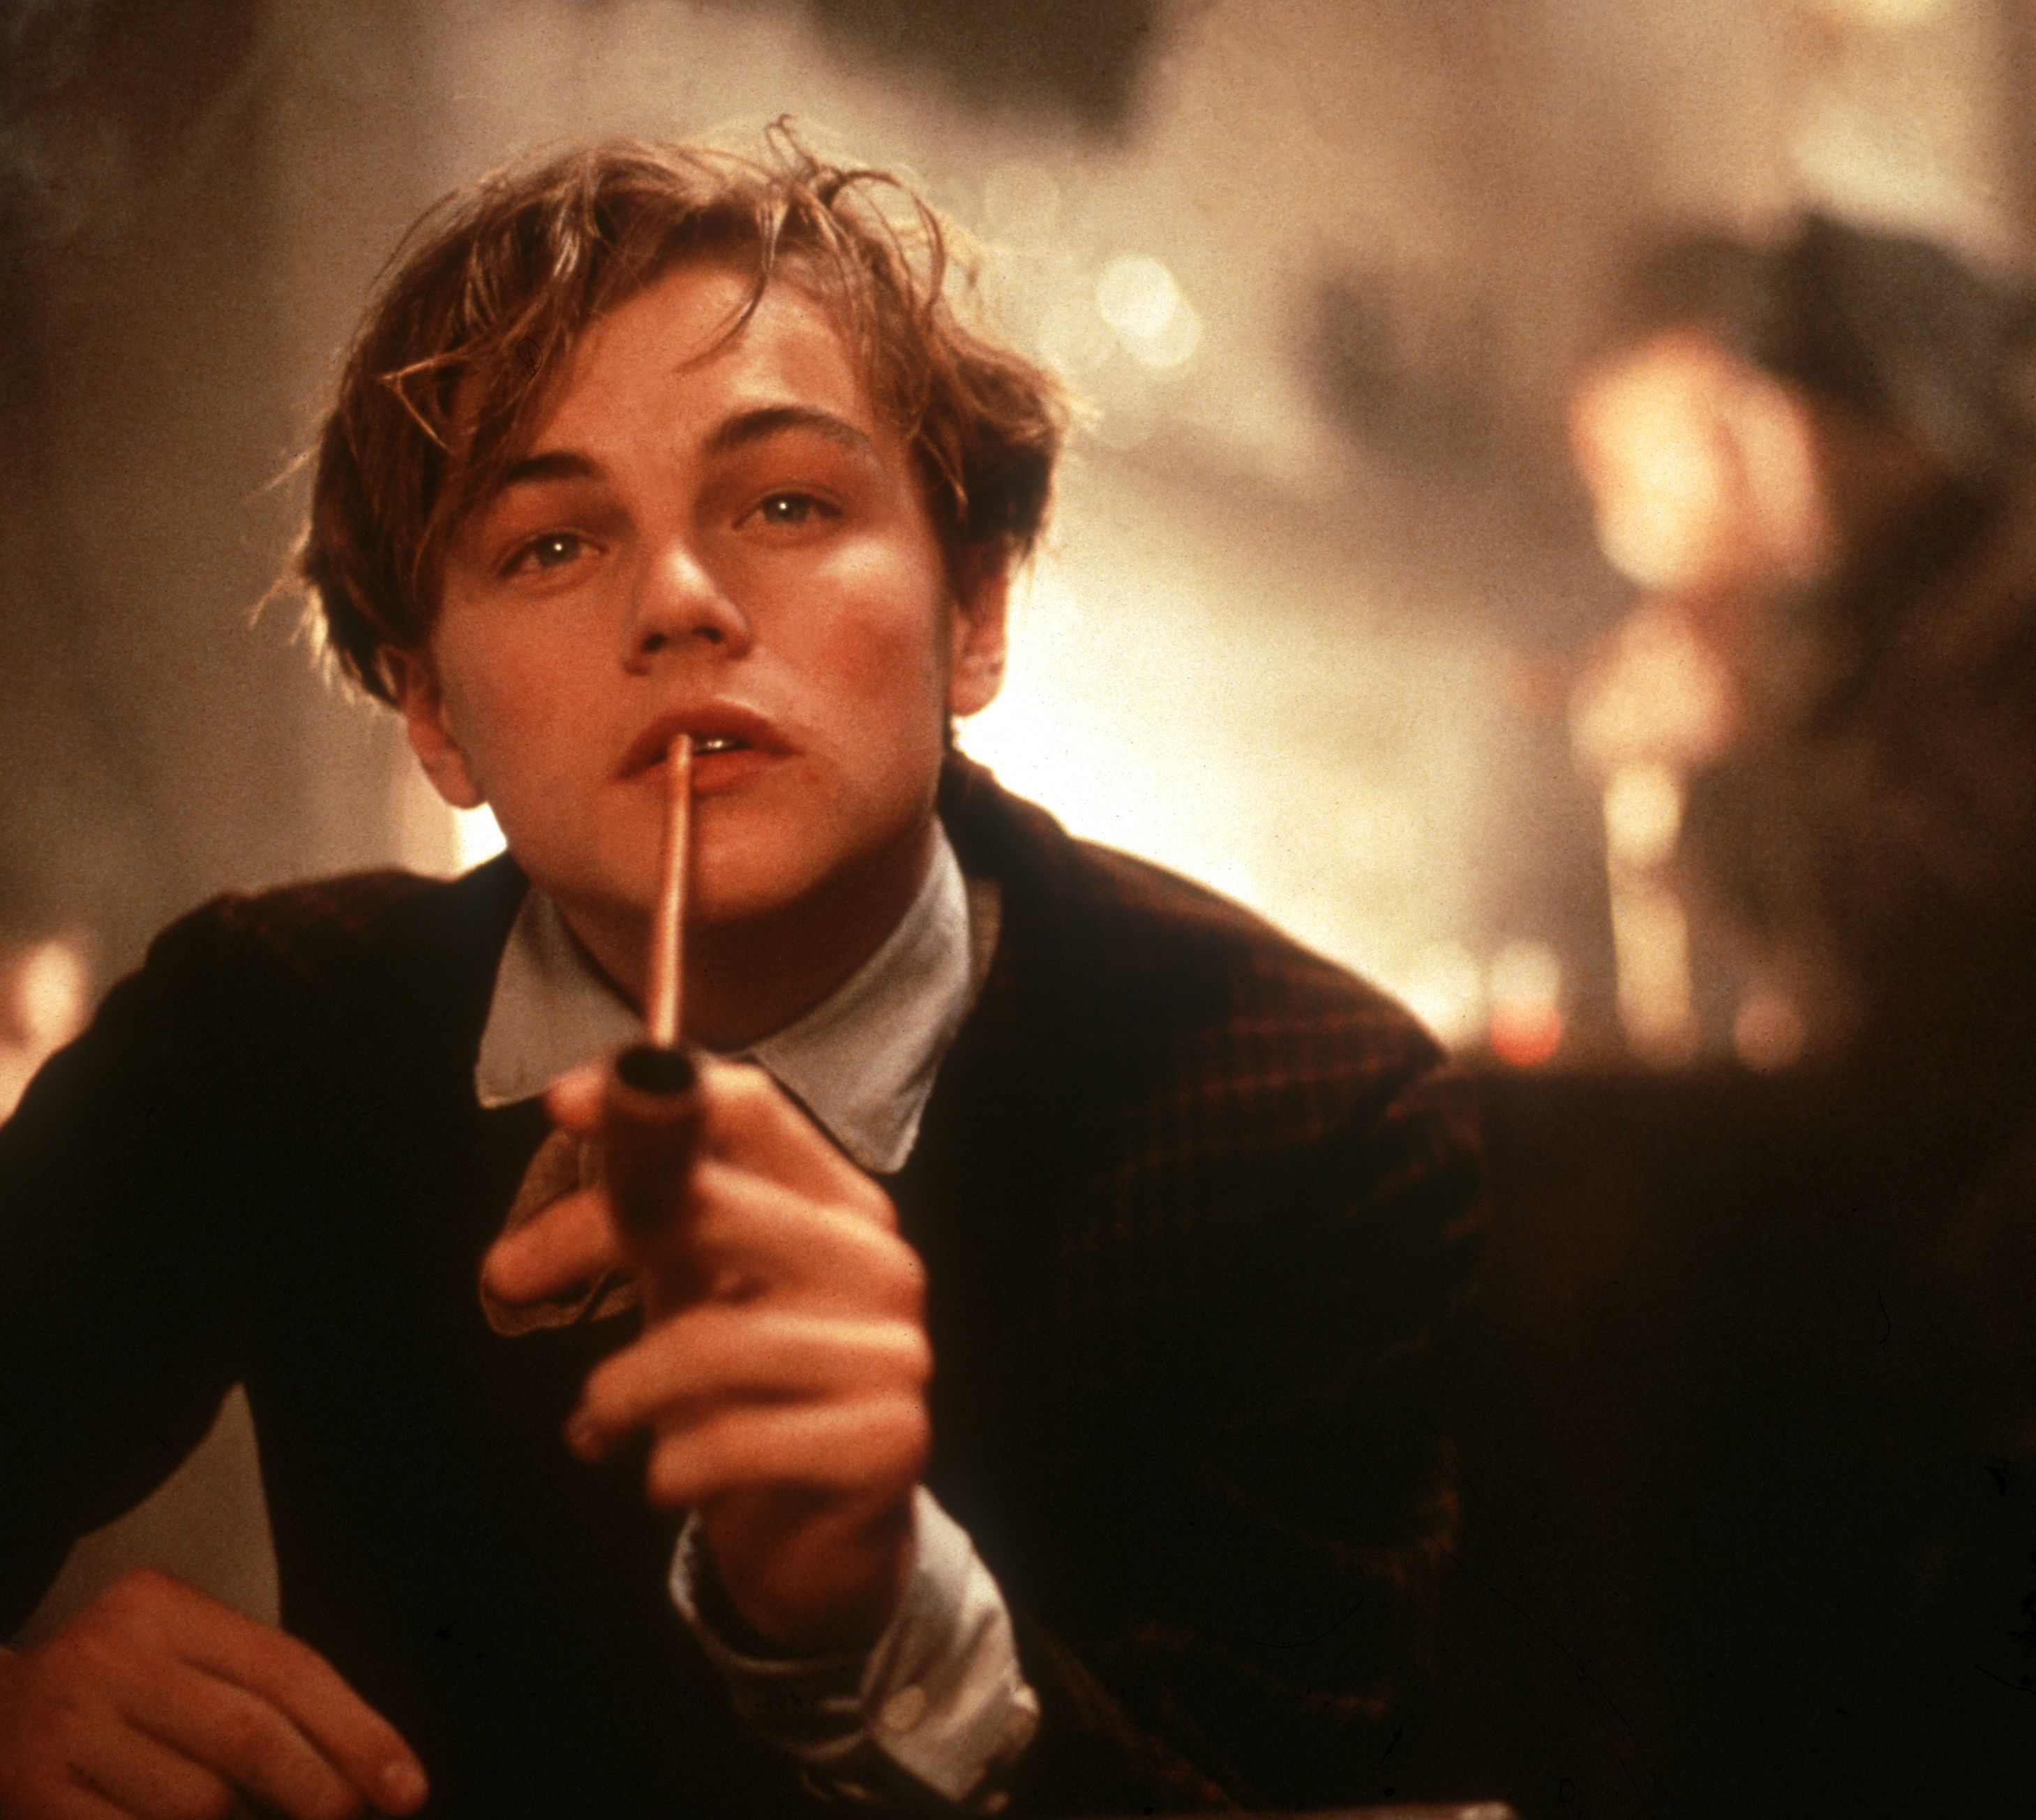 The 15 Best Leonardo DiCaprio Movies You Need To Watch